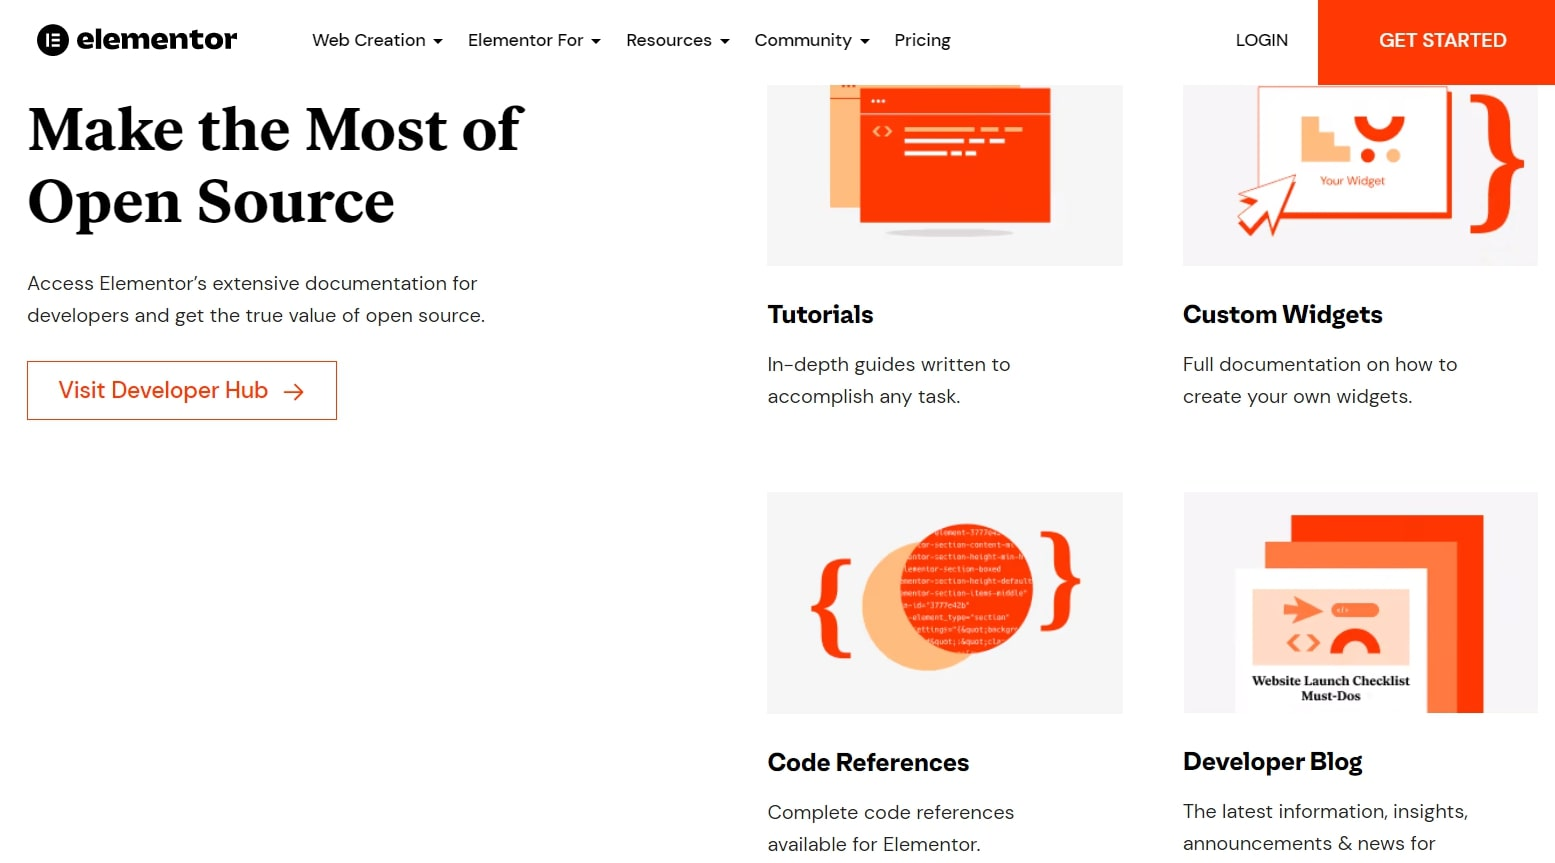 Elementor's webpage discussing its advanced user tools